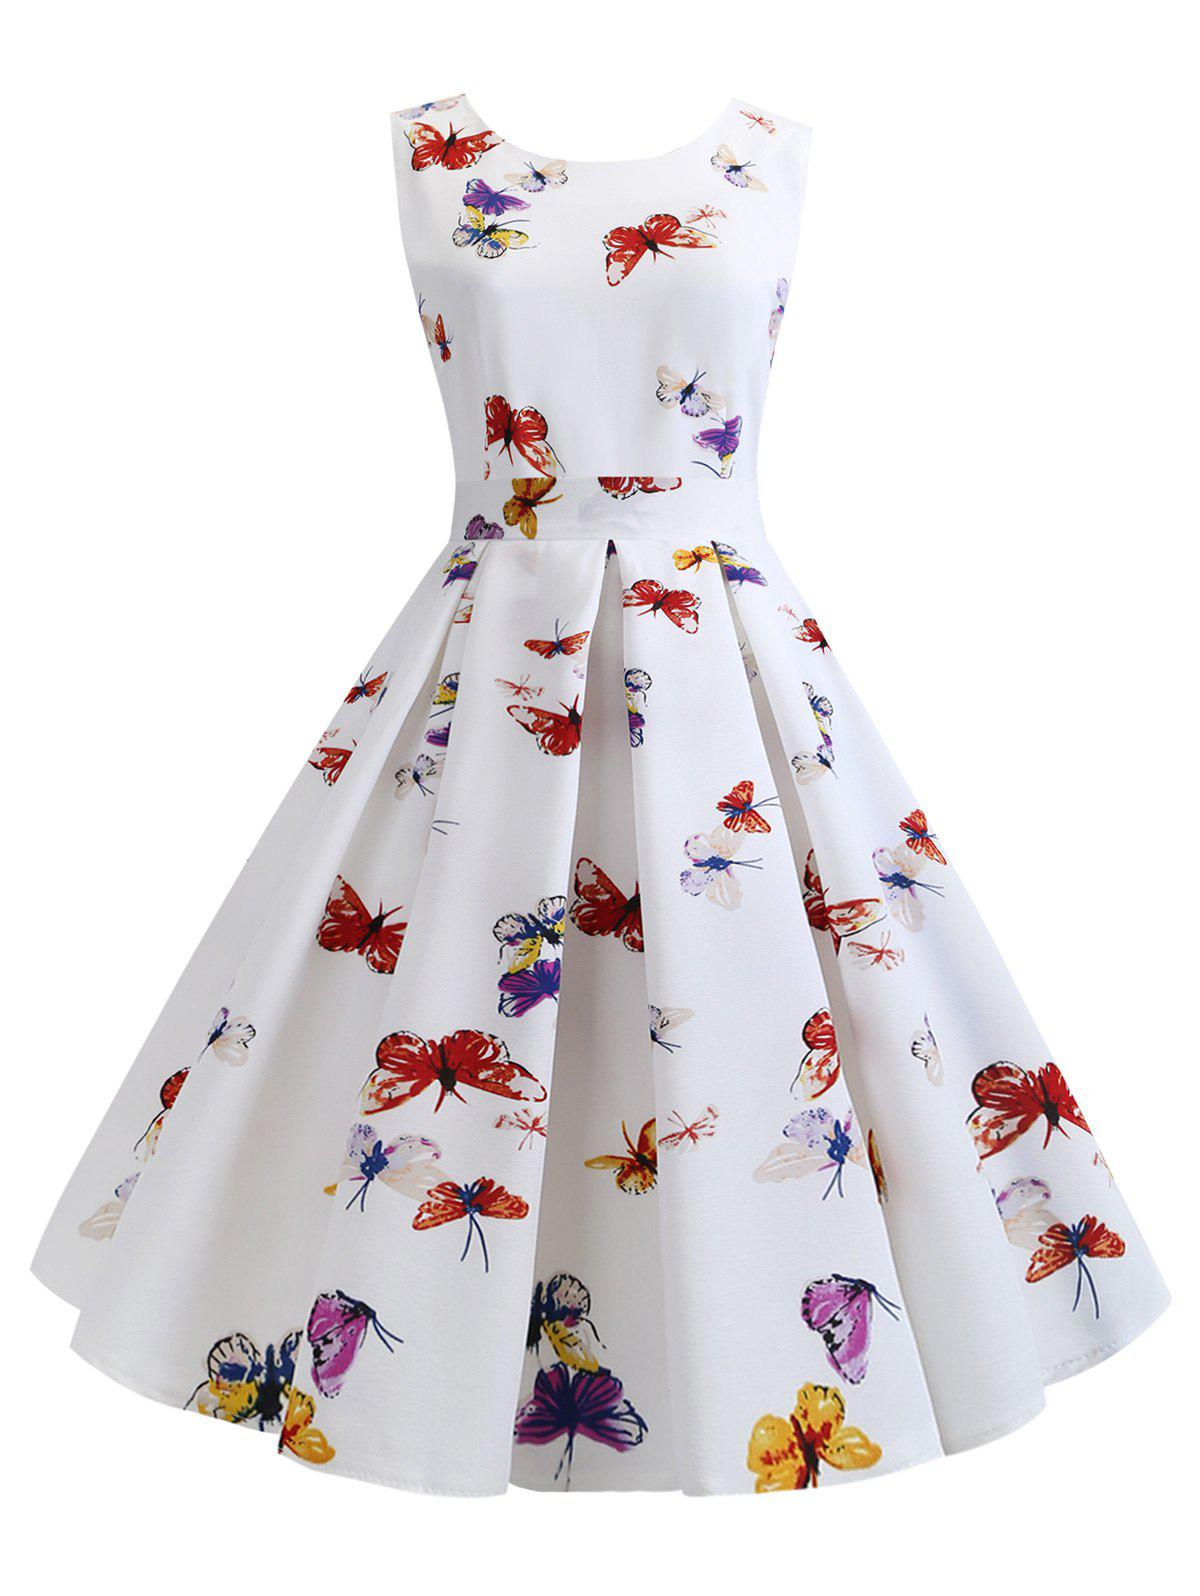 Shops Butterfly Print Belted Party Dress